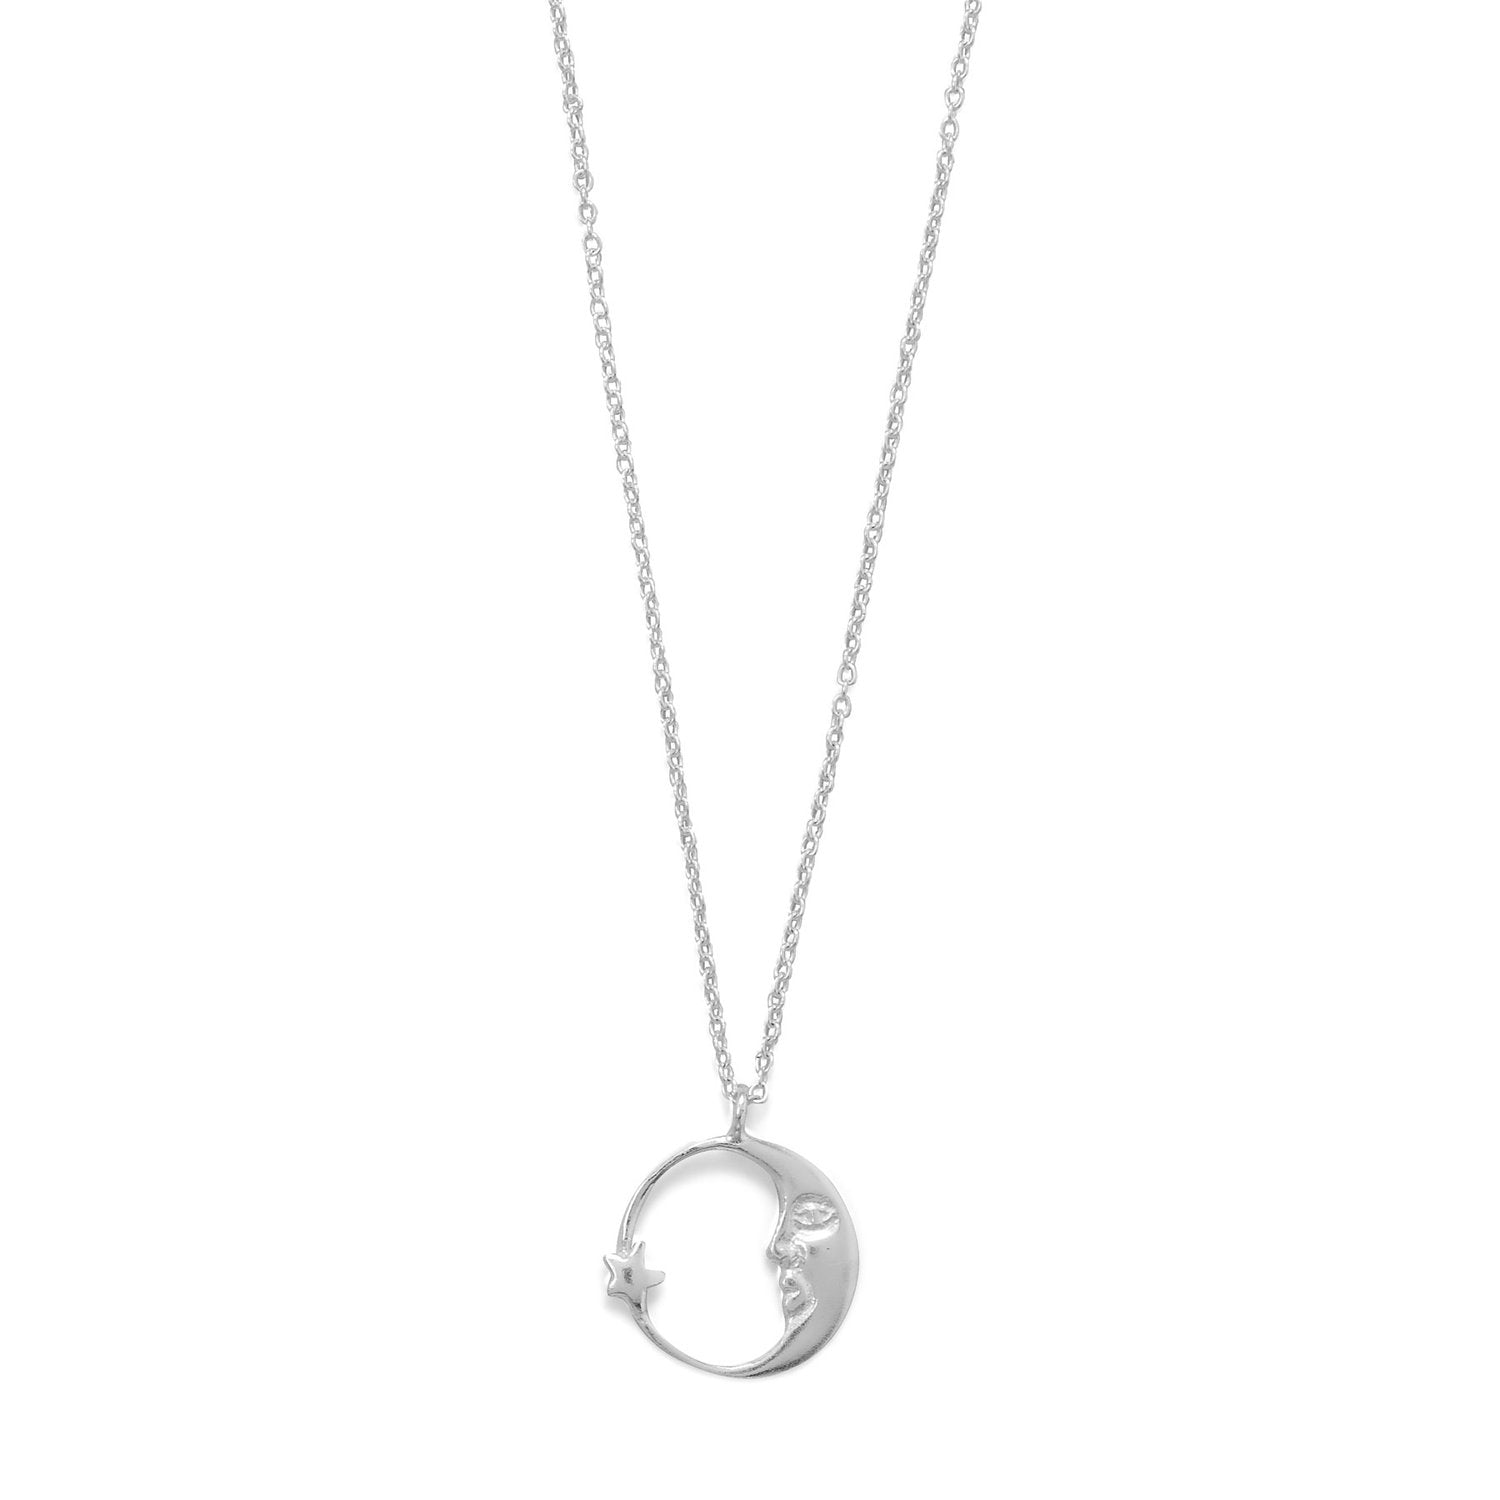 "16.5"" Crescent Moon with Star Necklace"